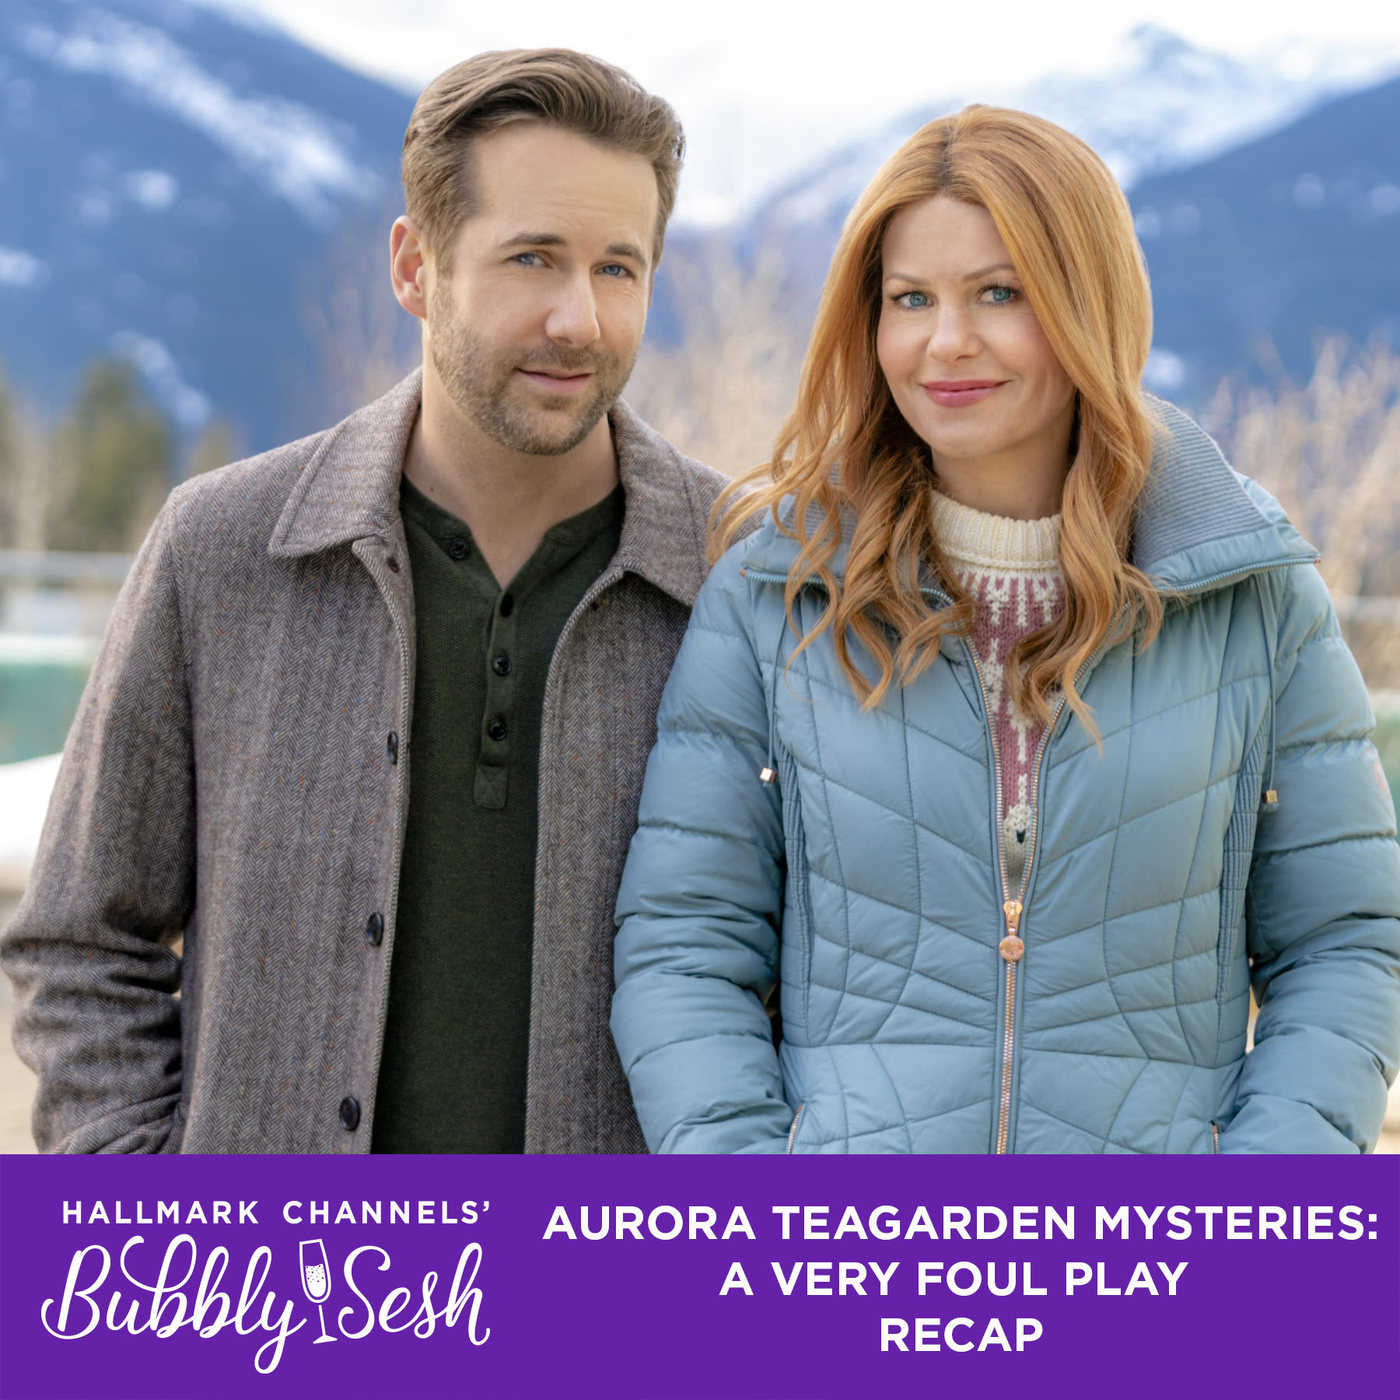 Aurora Teagarden Mysteries: A Very Foul Play Recap